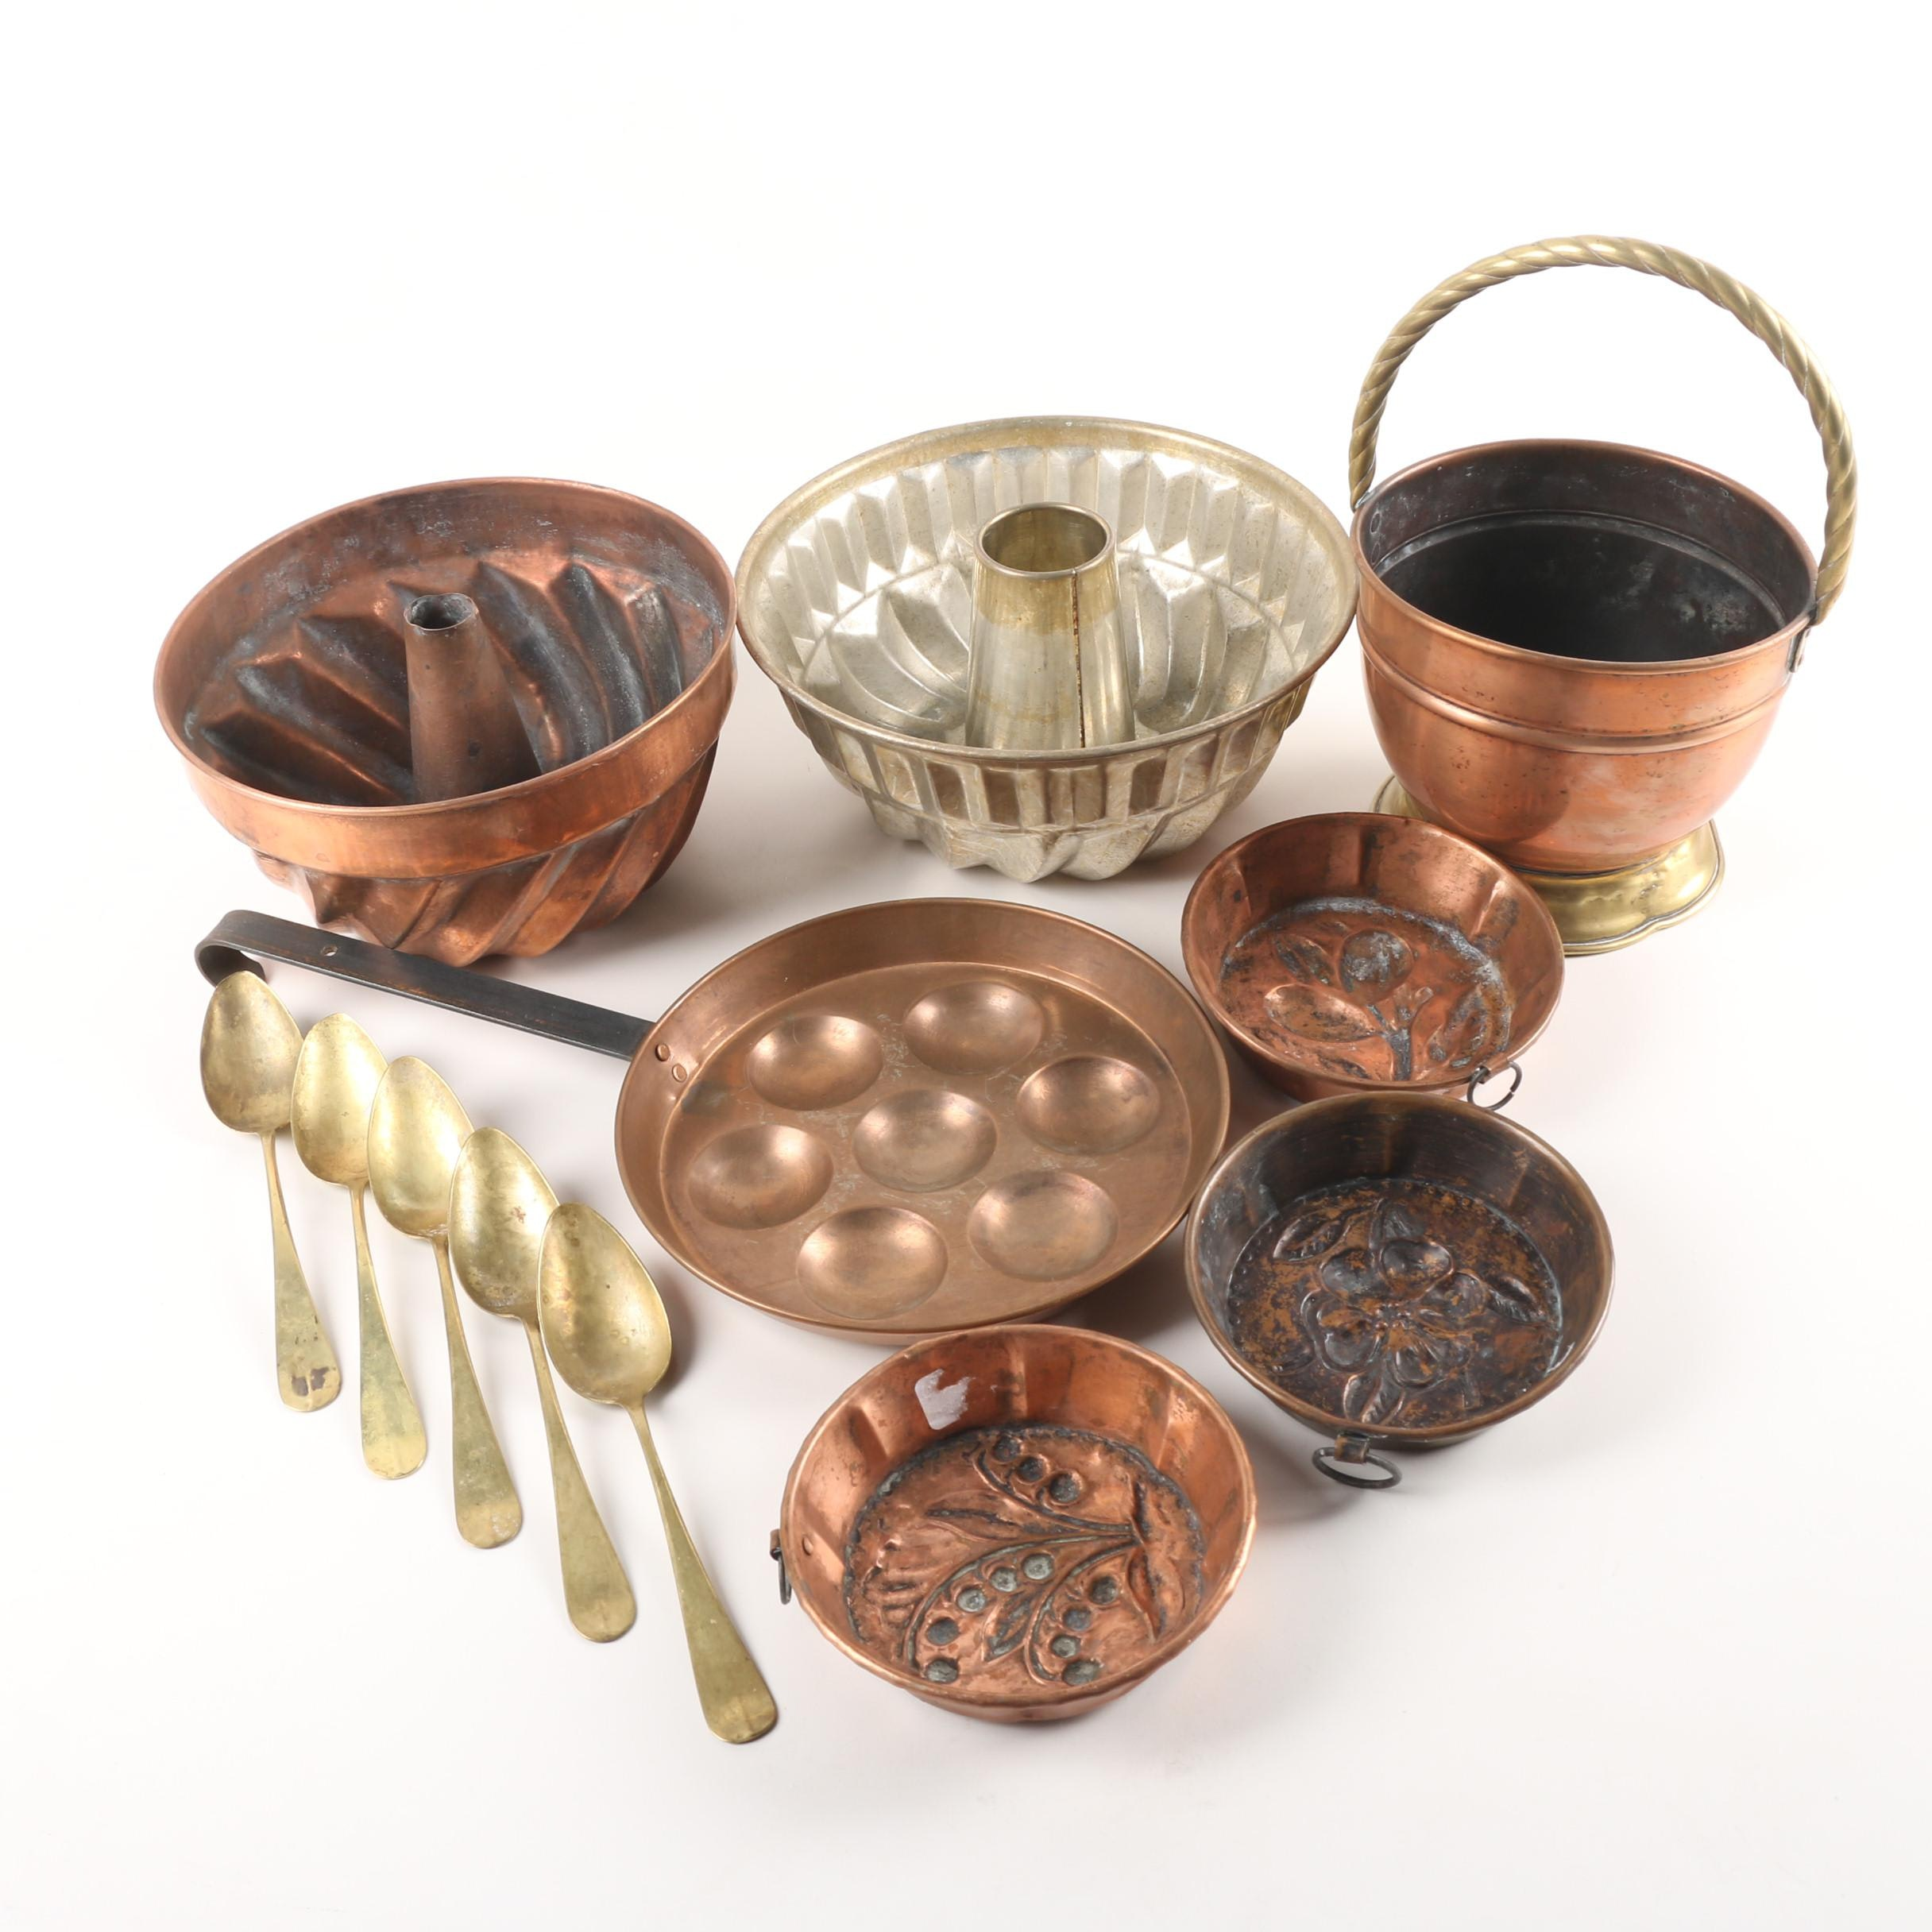 Vintage Brass, Copper, and Metal Cookware and Bundt Cake Molds